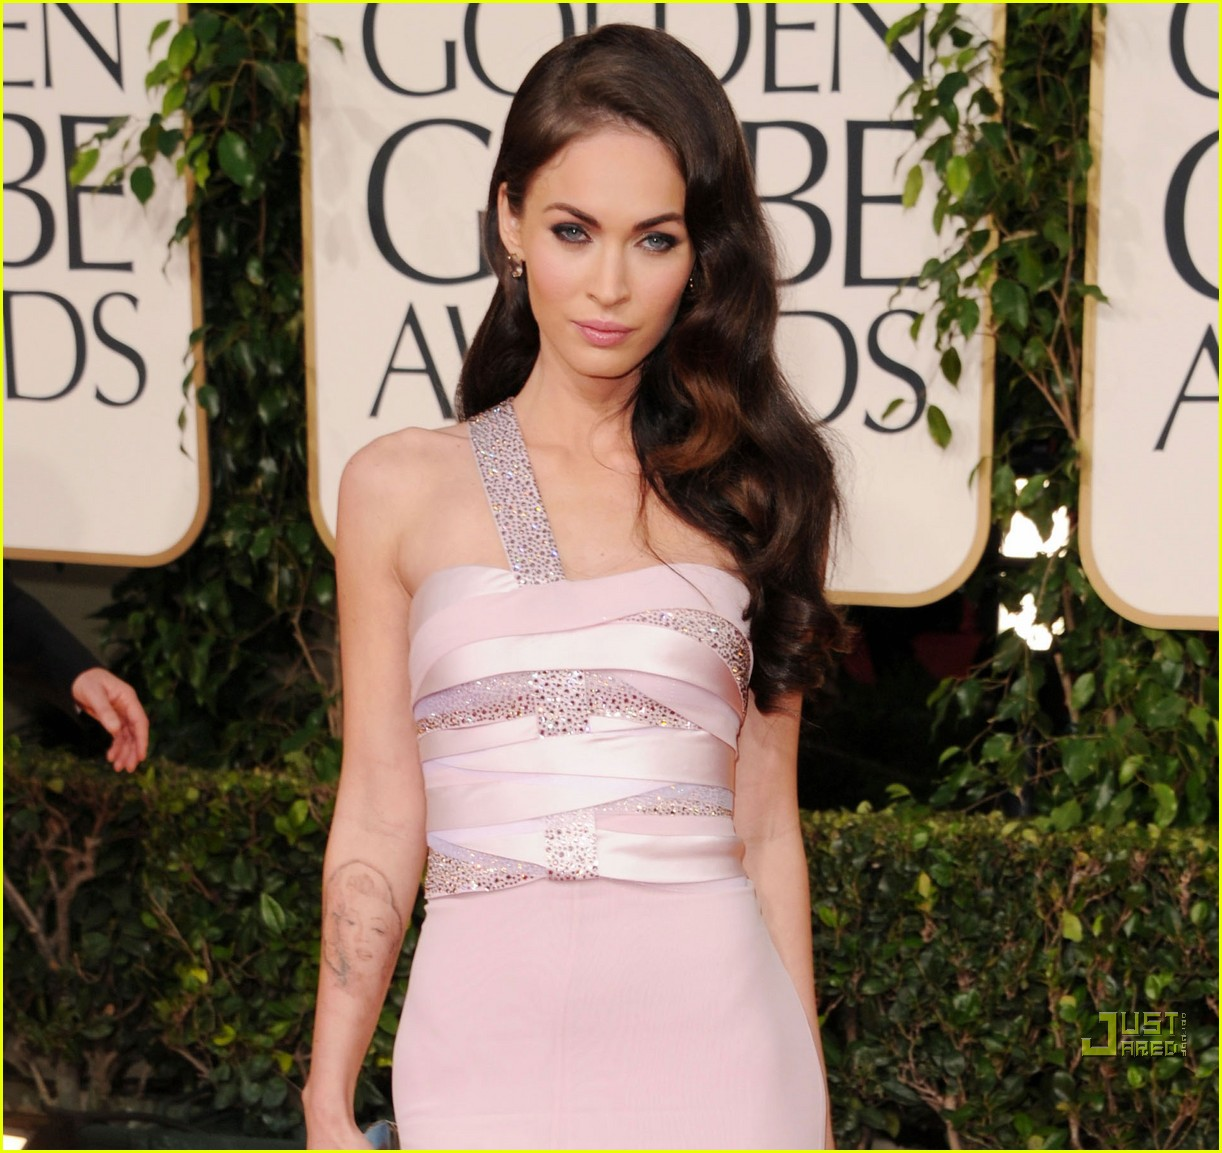 megan fox golden globes red carpet 2011 09